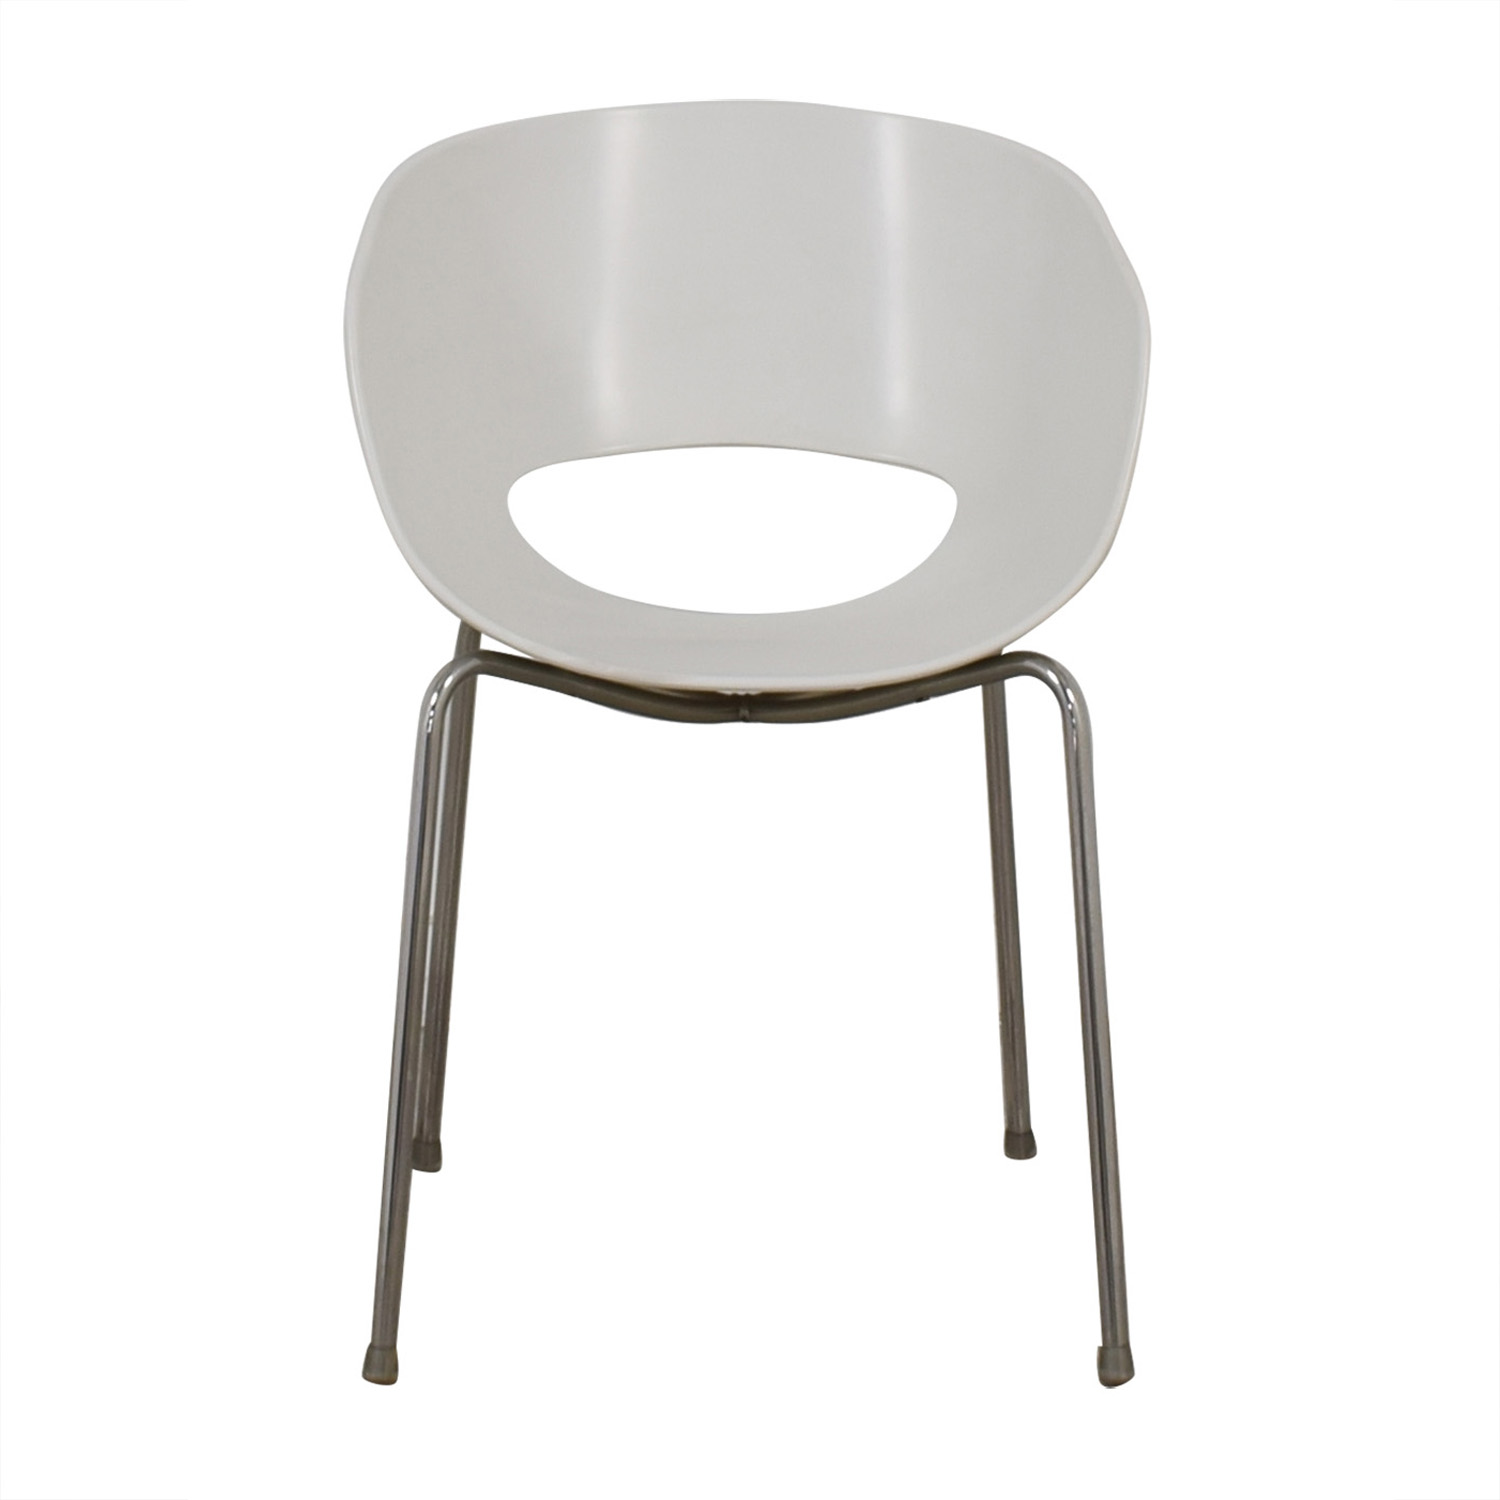 shop Cb2 Orbit White Arm Chair CB2 Chairs